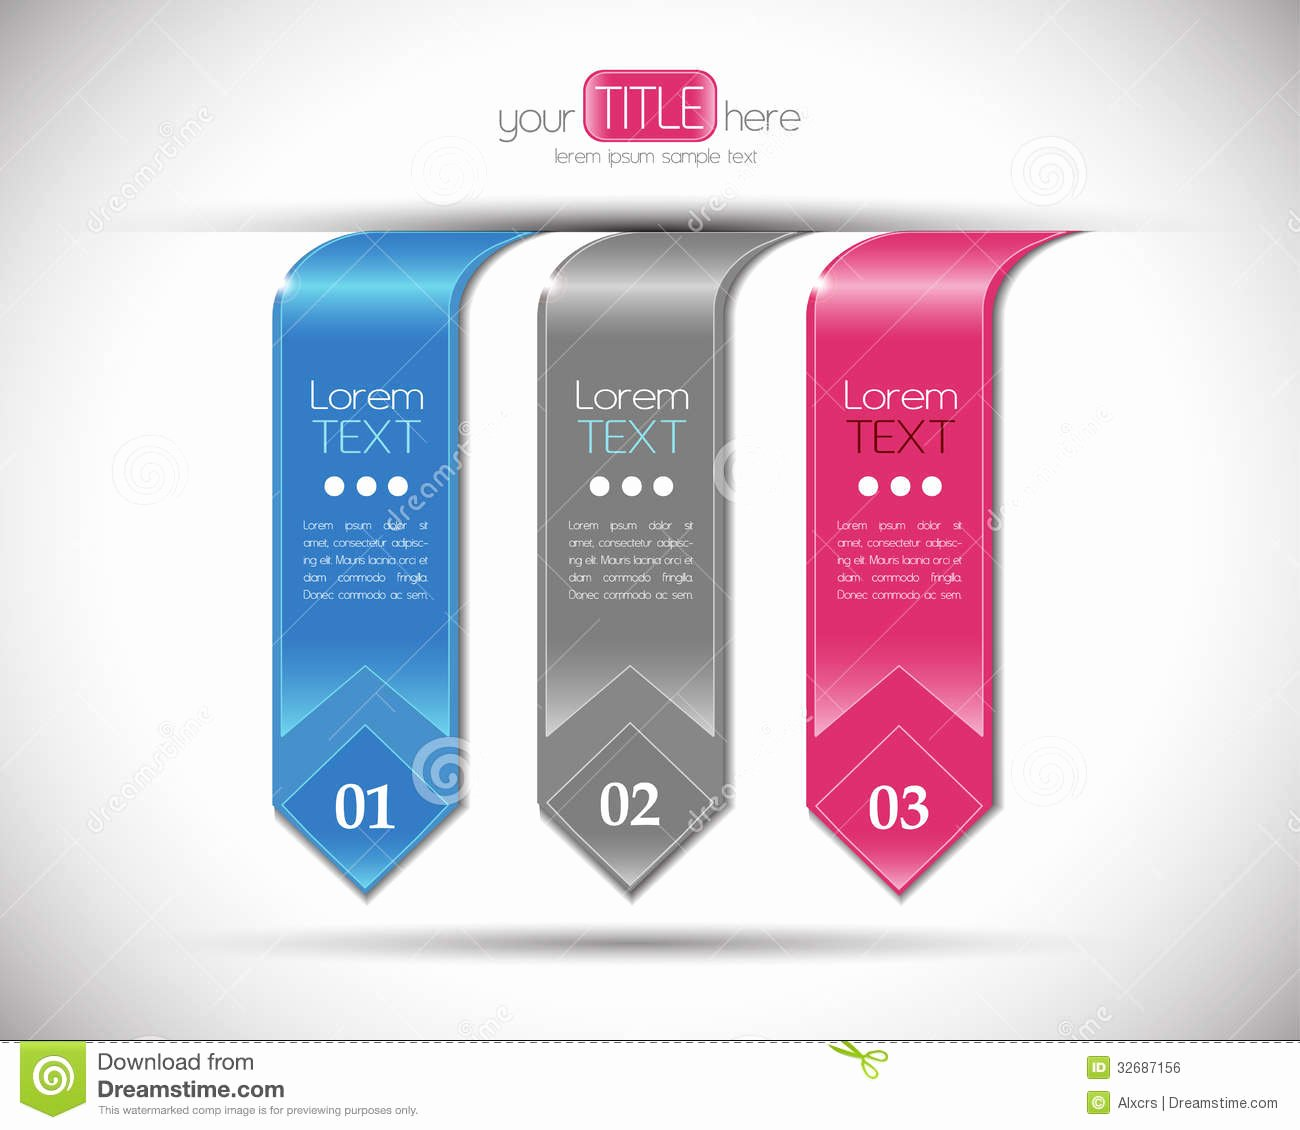 Free Graphic Design Template Best Of Modern Number Banners Design Template Royalty Free Stock